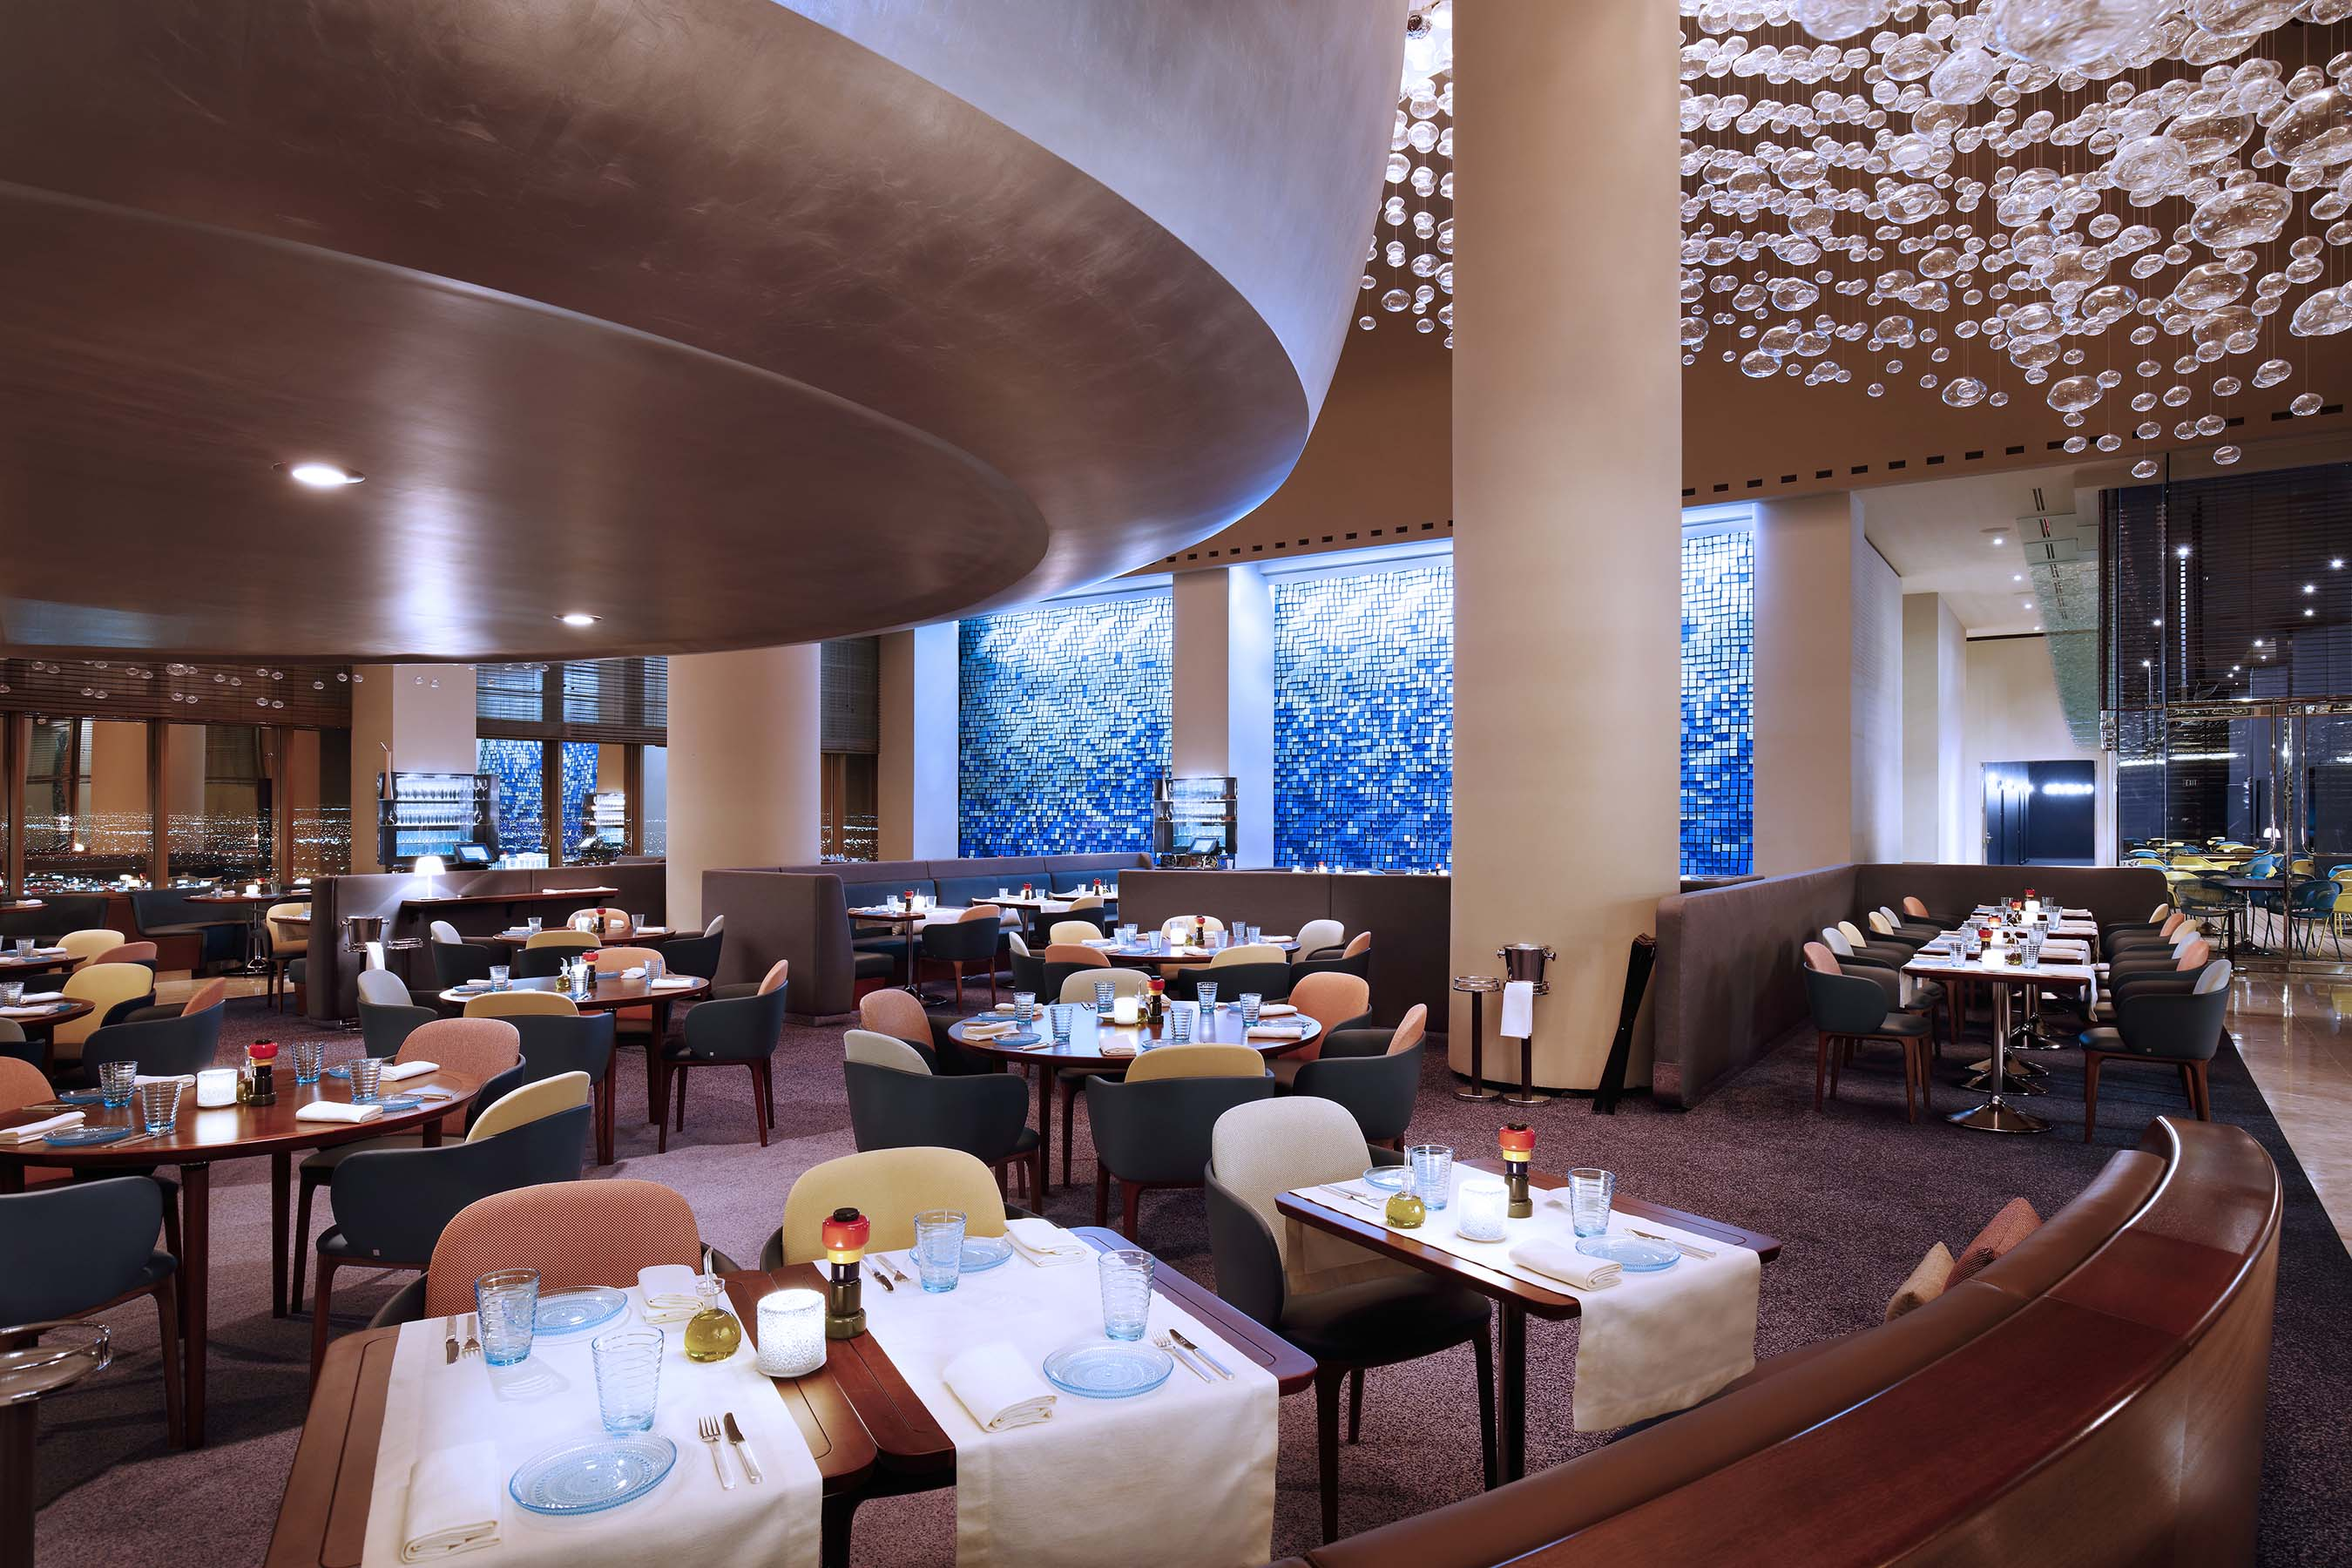 The new Rivea restaurant at The Delano, photo courtesty of The Delano